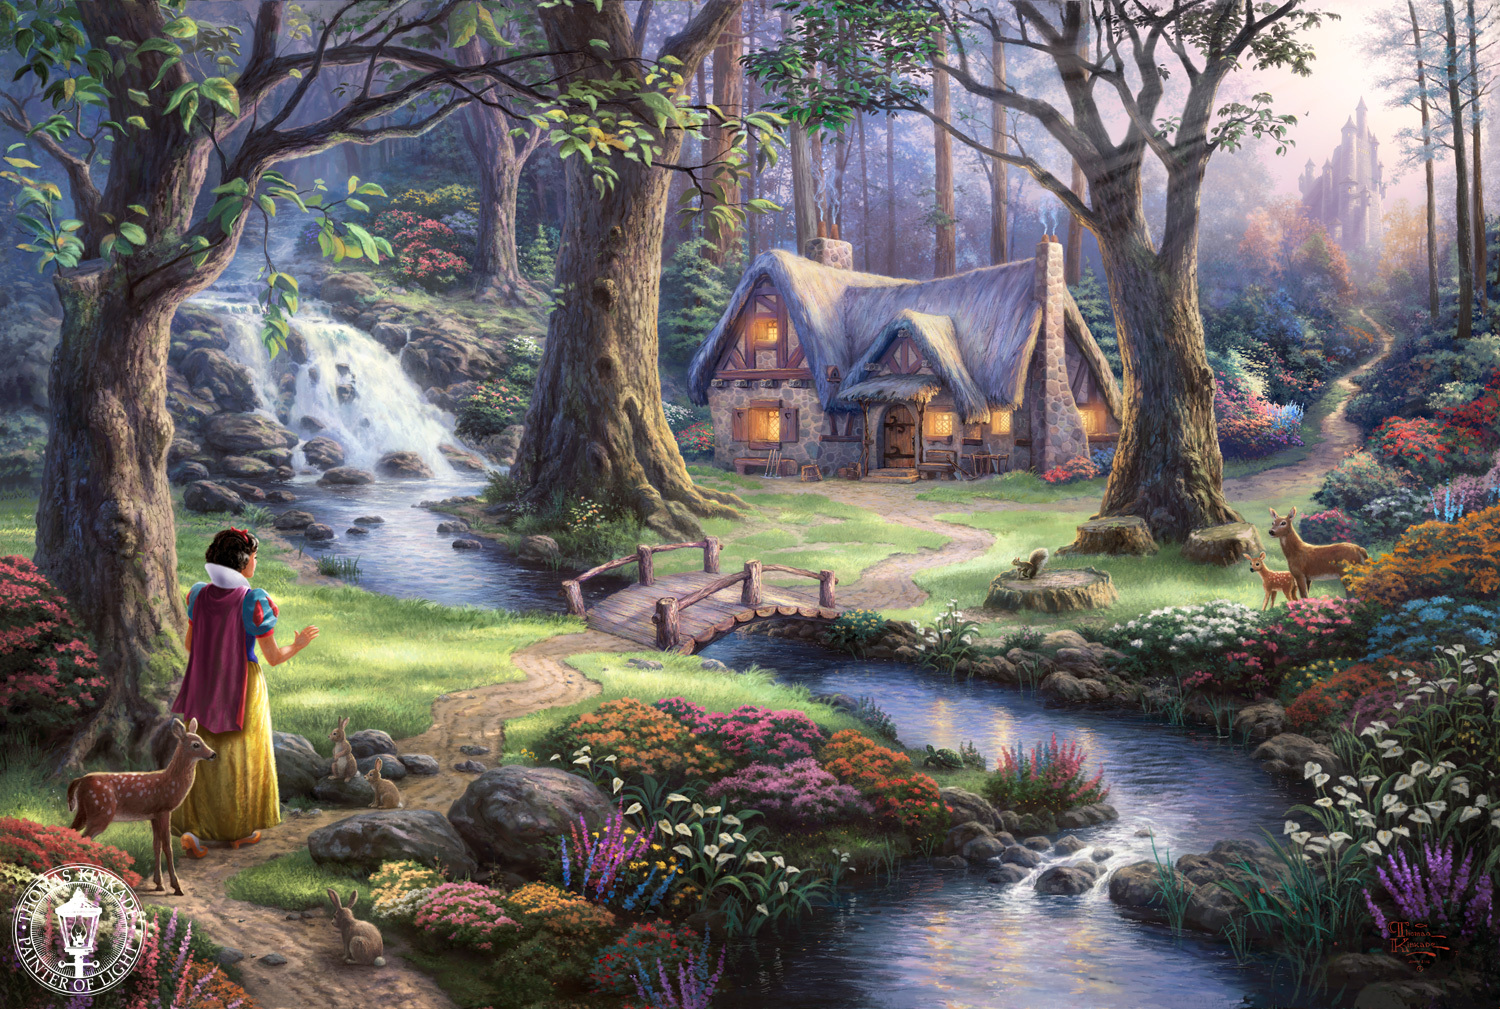 Thomas Kinkade Quot Disney Dreams Quot Disney Princess Photo